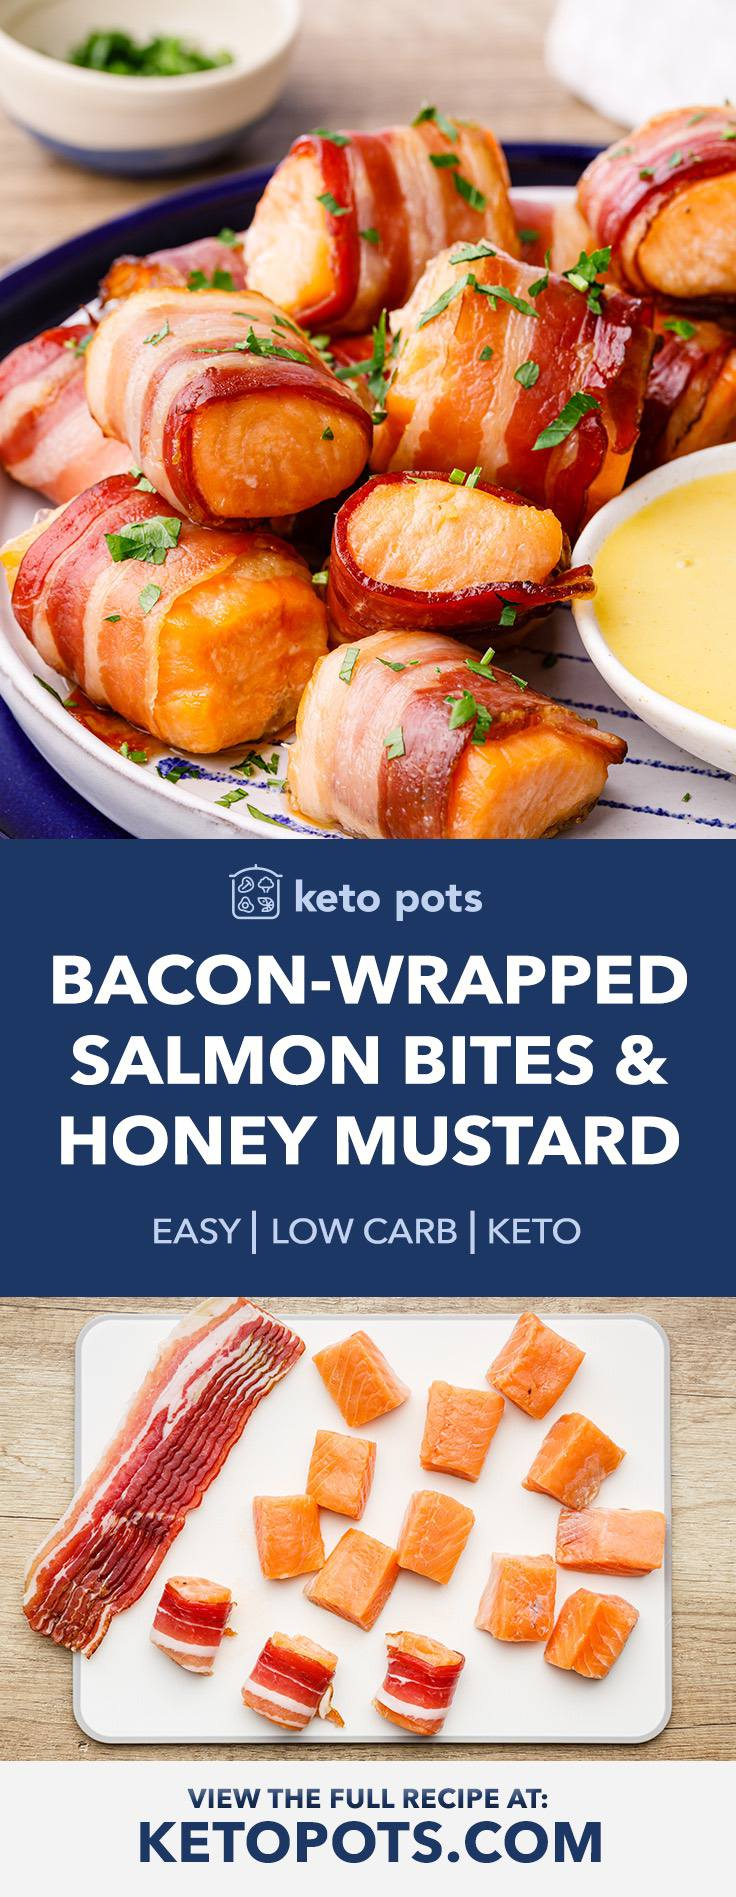 Bacon-Wrapped Salmon Bites with Creamy Honey Mustard Dipping Sauce